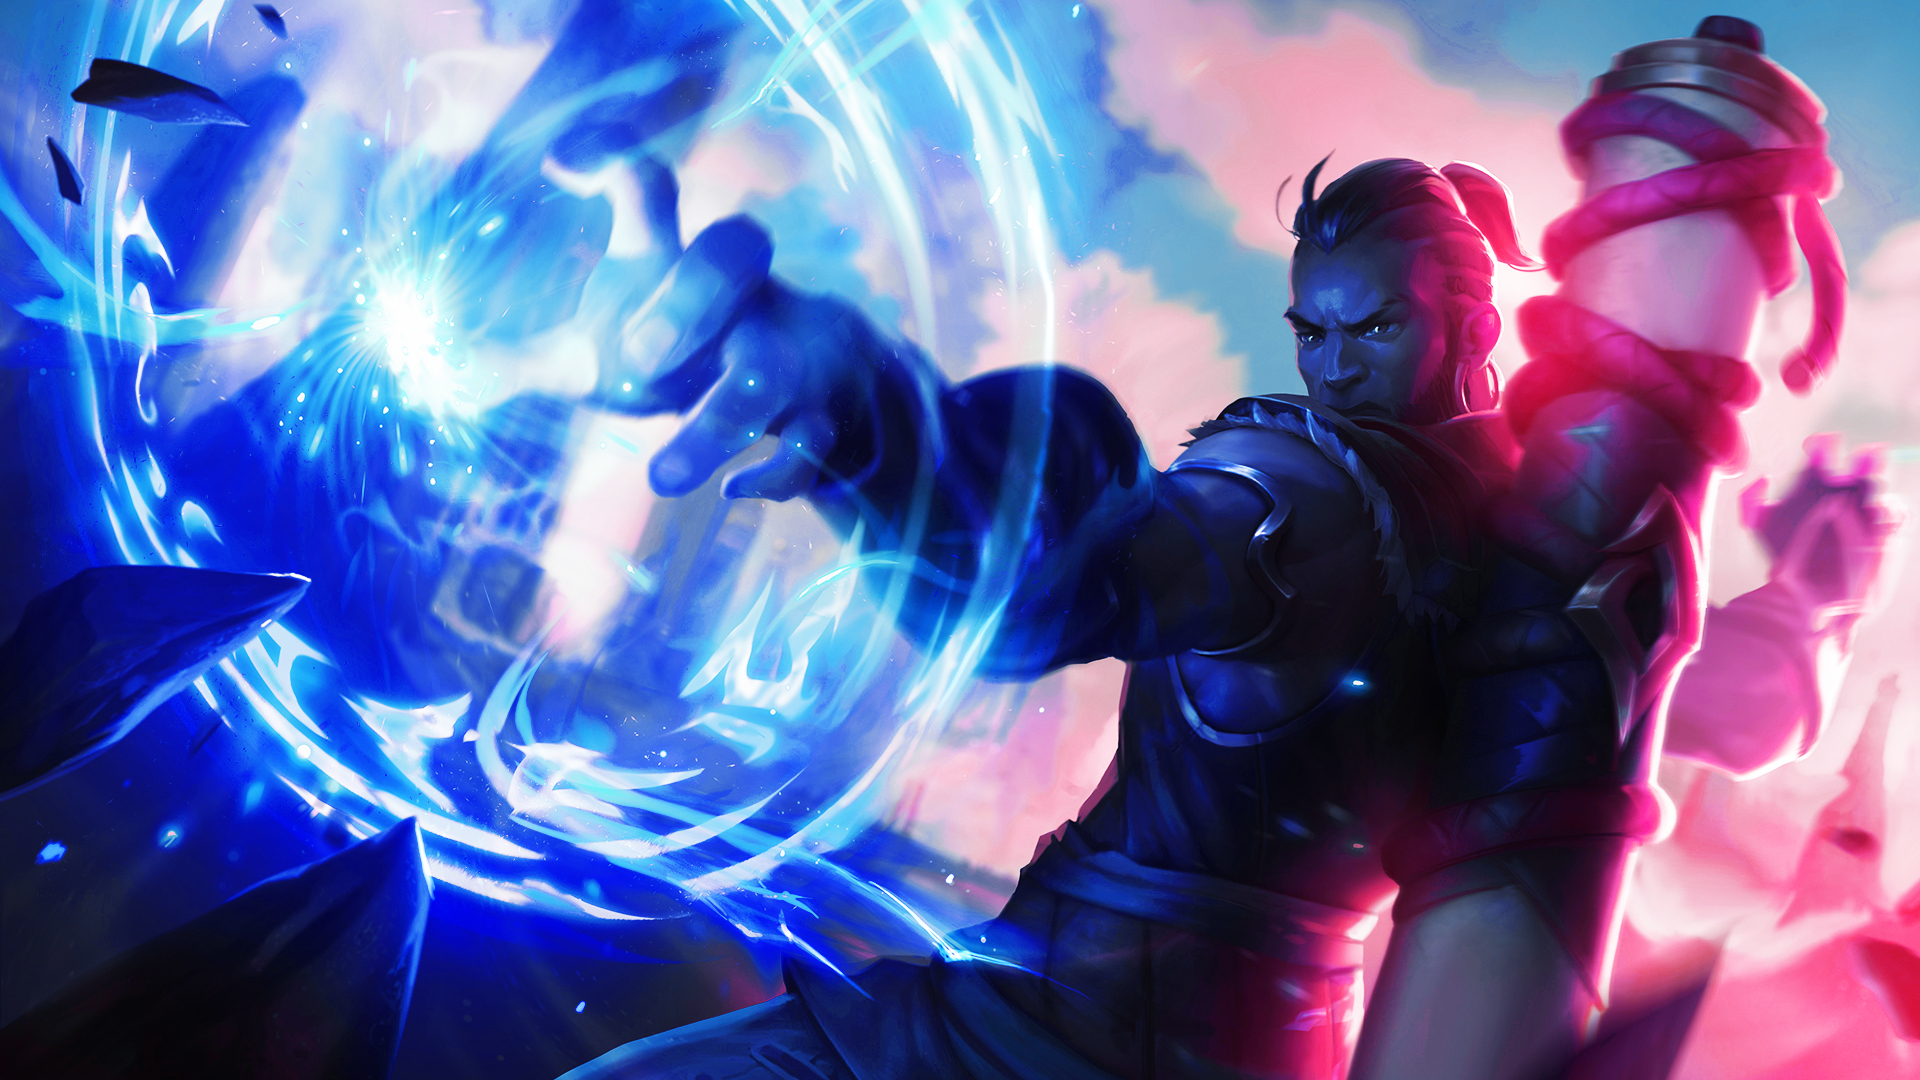 Wallpaper Of League Of Legends Ryze Video Game Background